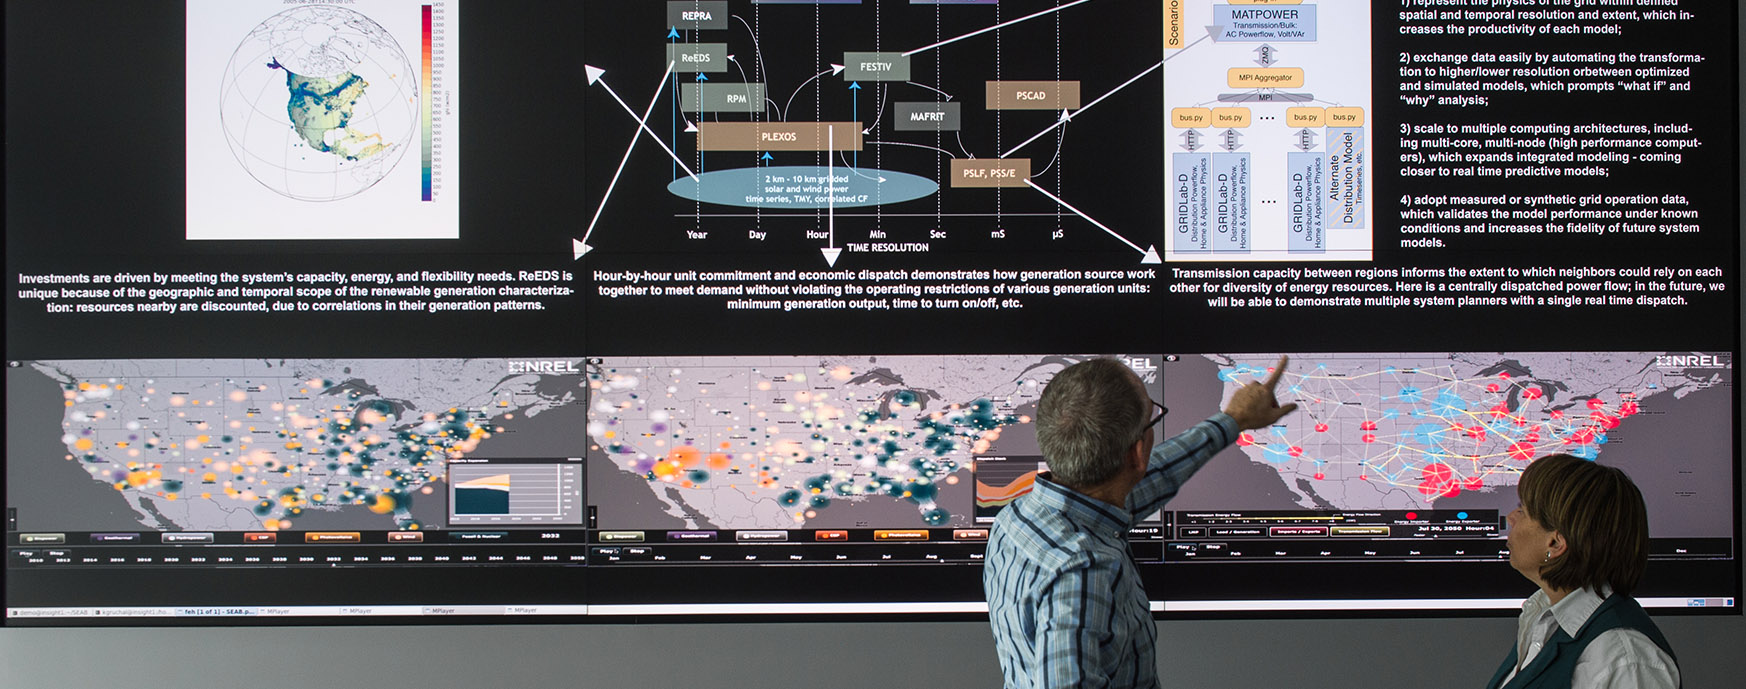 Photo of researchers inspecting maps on a large display.